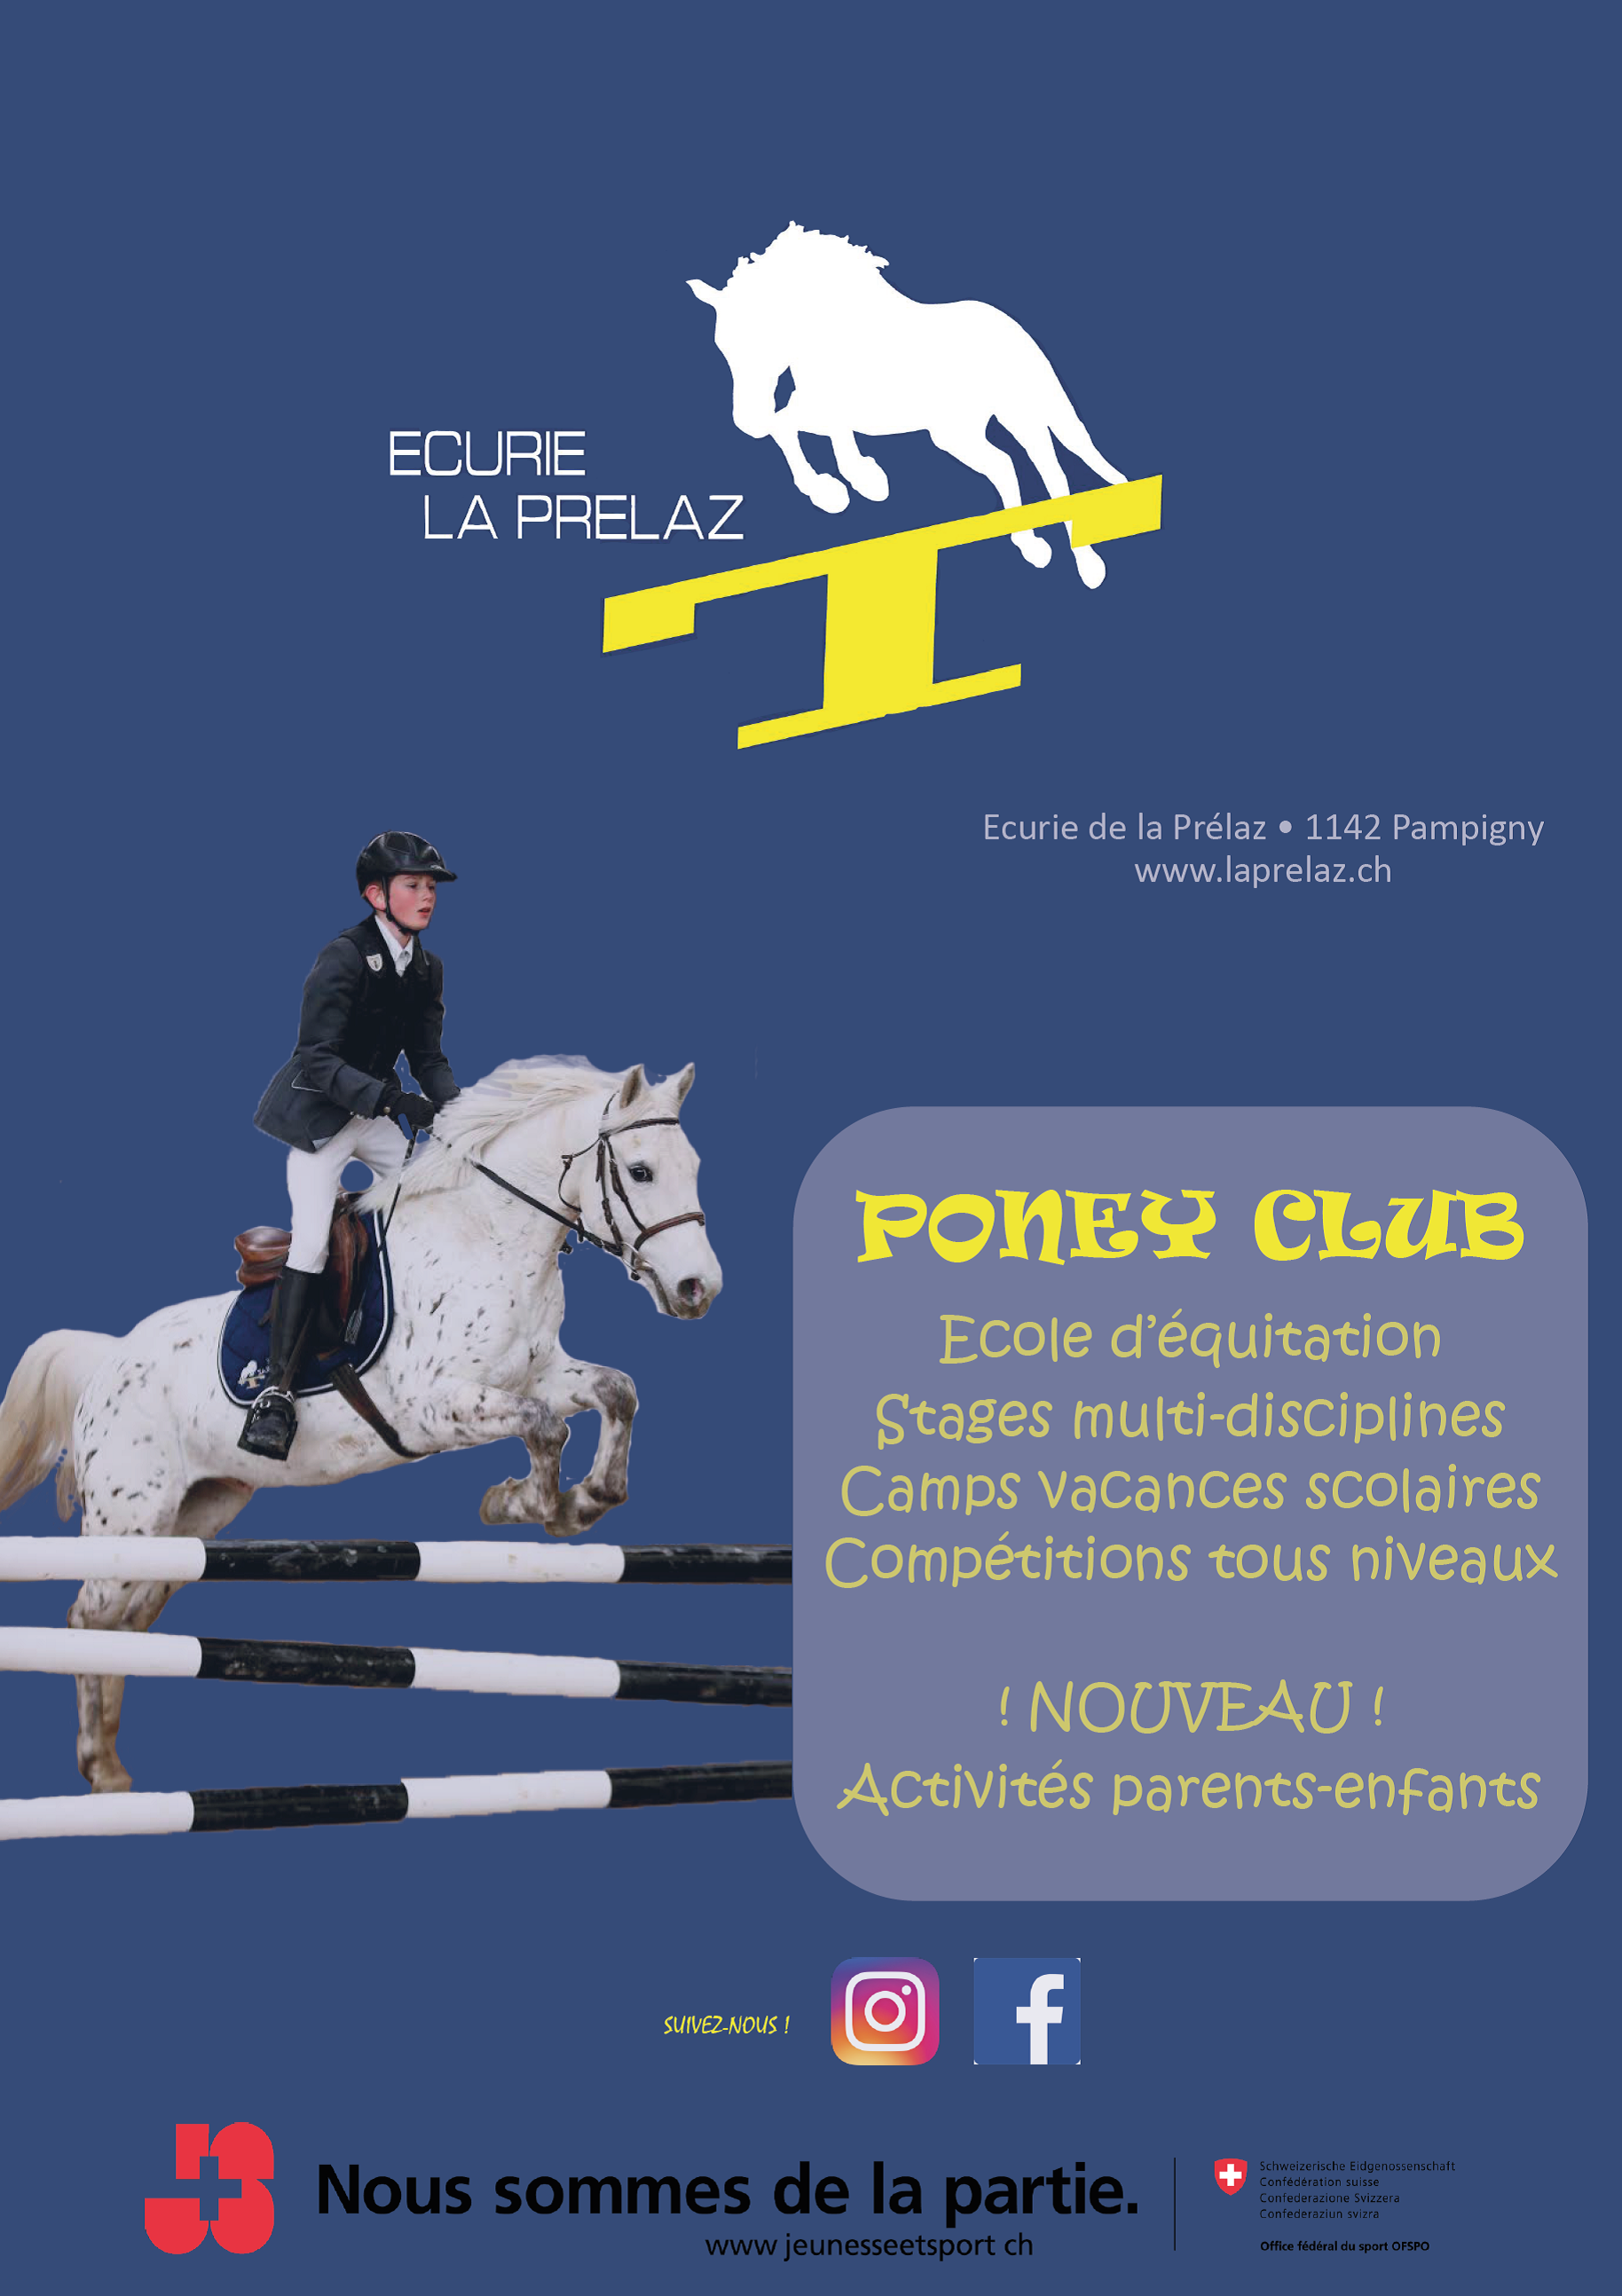 longines-global-champions-tour-2014-9.png